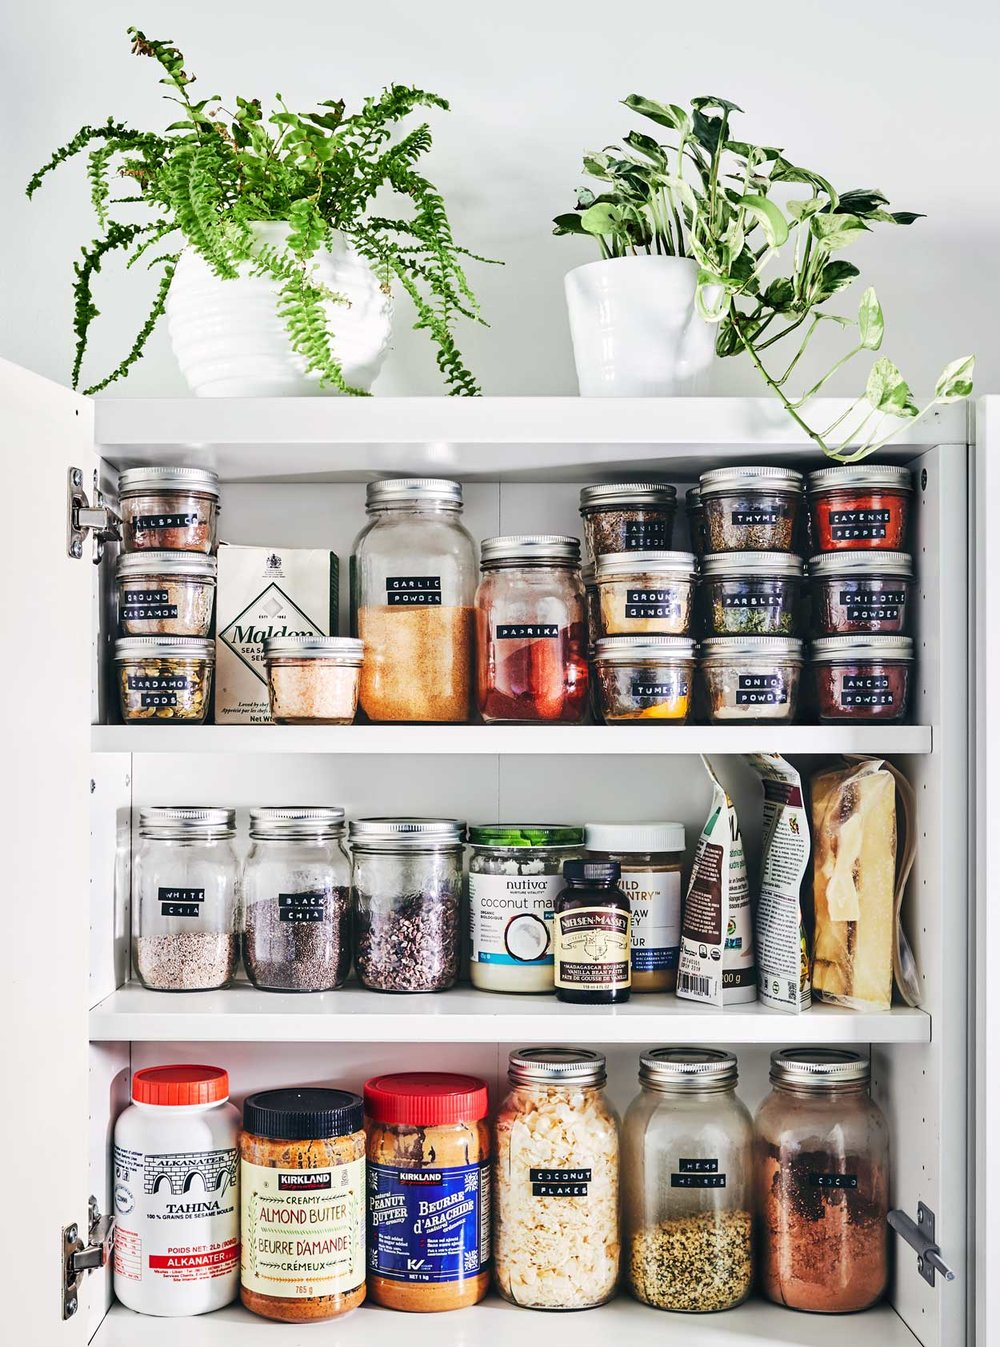 Inside Evergreen Kitchen's Pantry | Spices, Superfoods, Baking, Plants | A Resource Guide